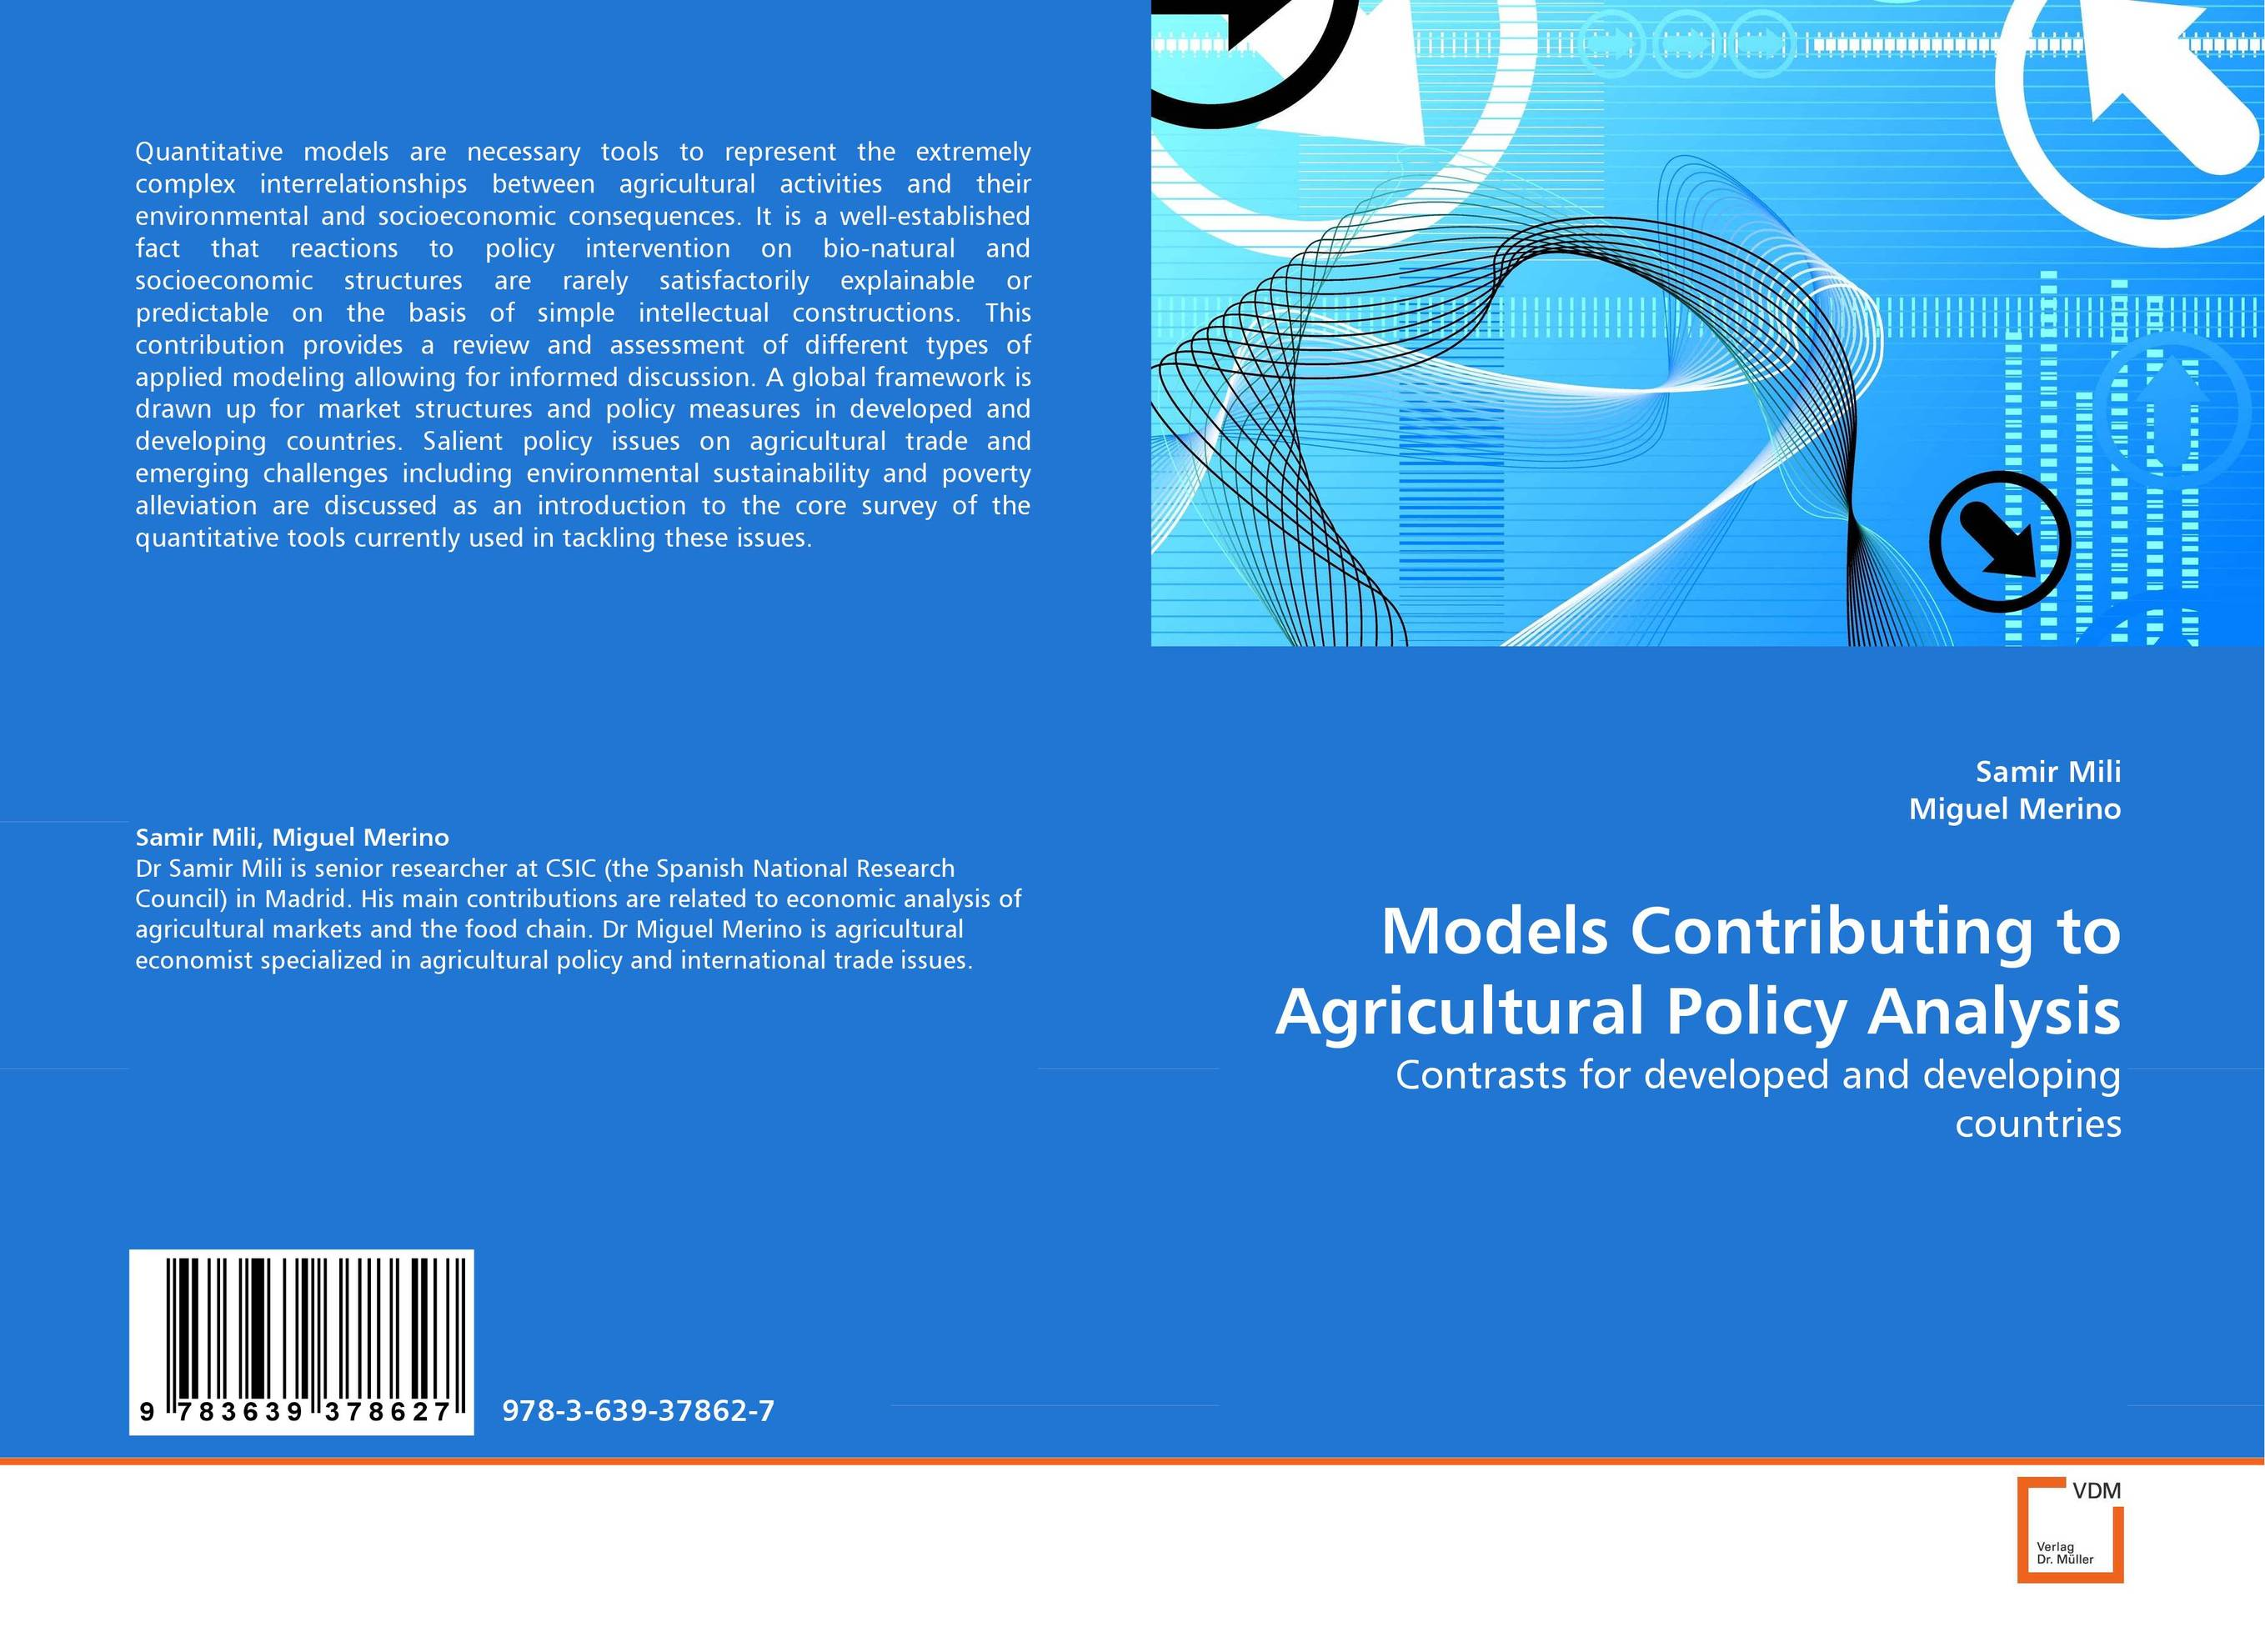 Models Contributing to Agricultural Policy Analysis